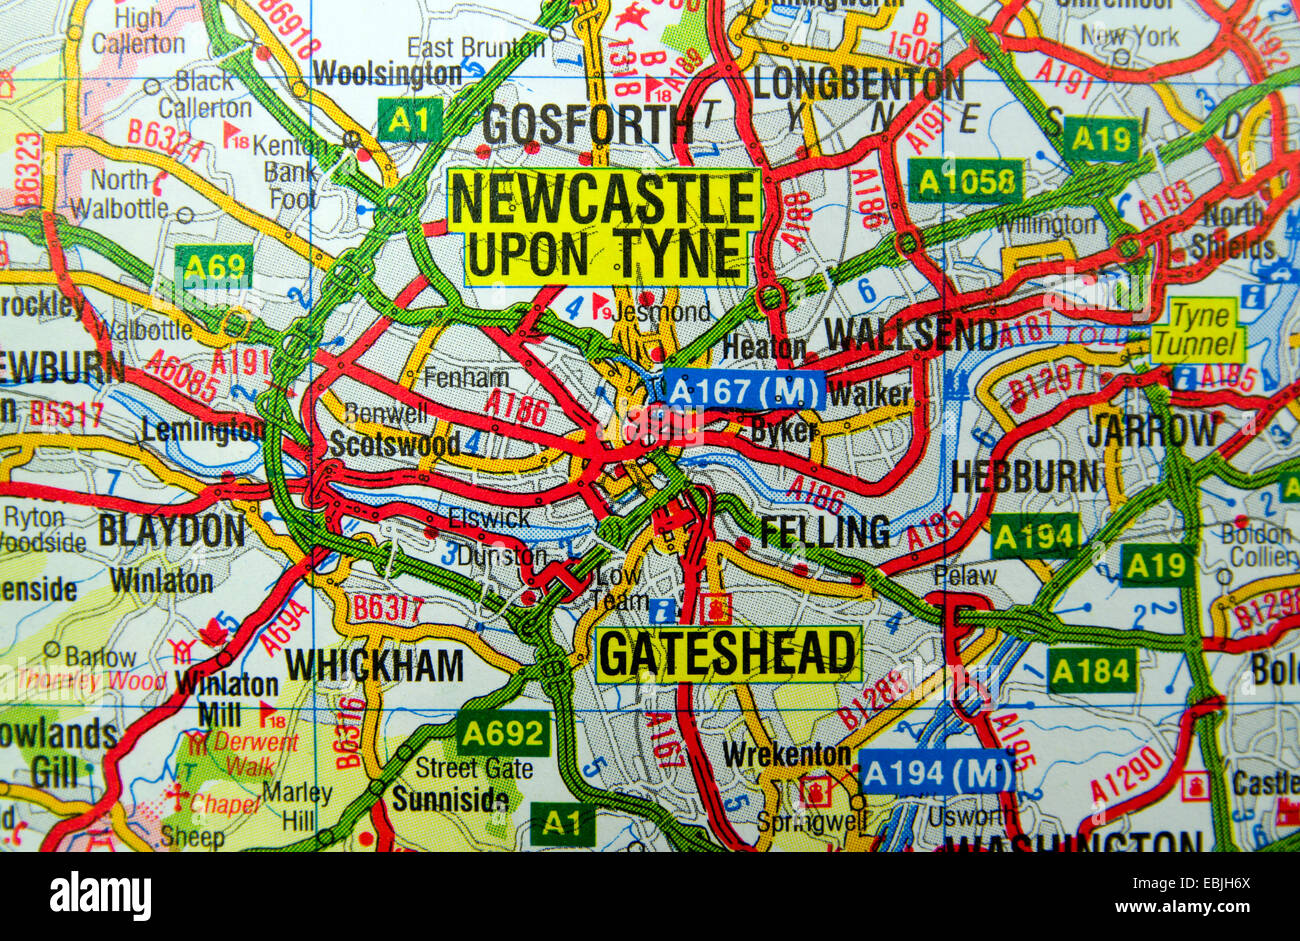 Newcastle Upon Tyne Map Stock Photos Newcastle Upon Tyne Map